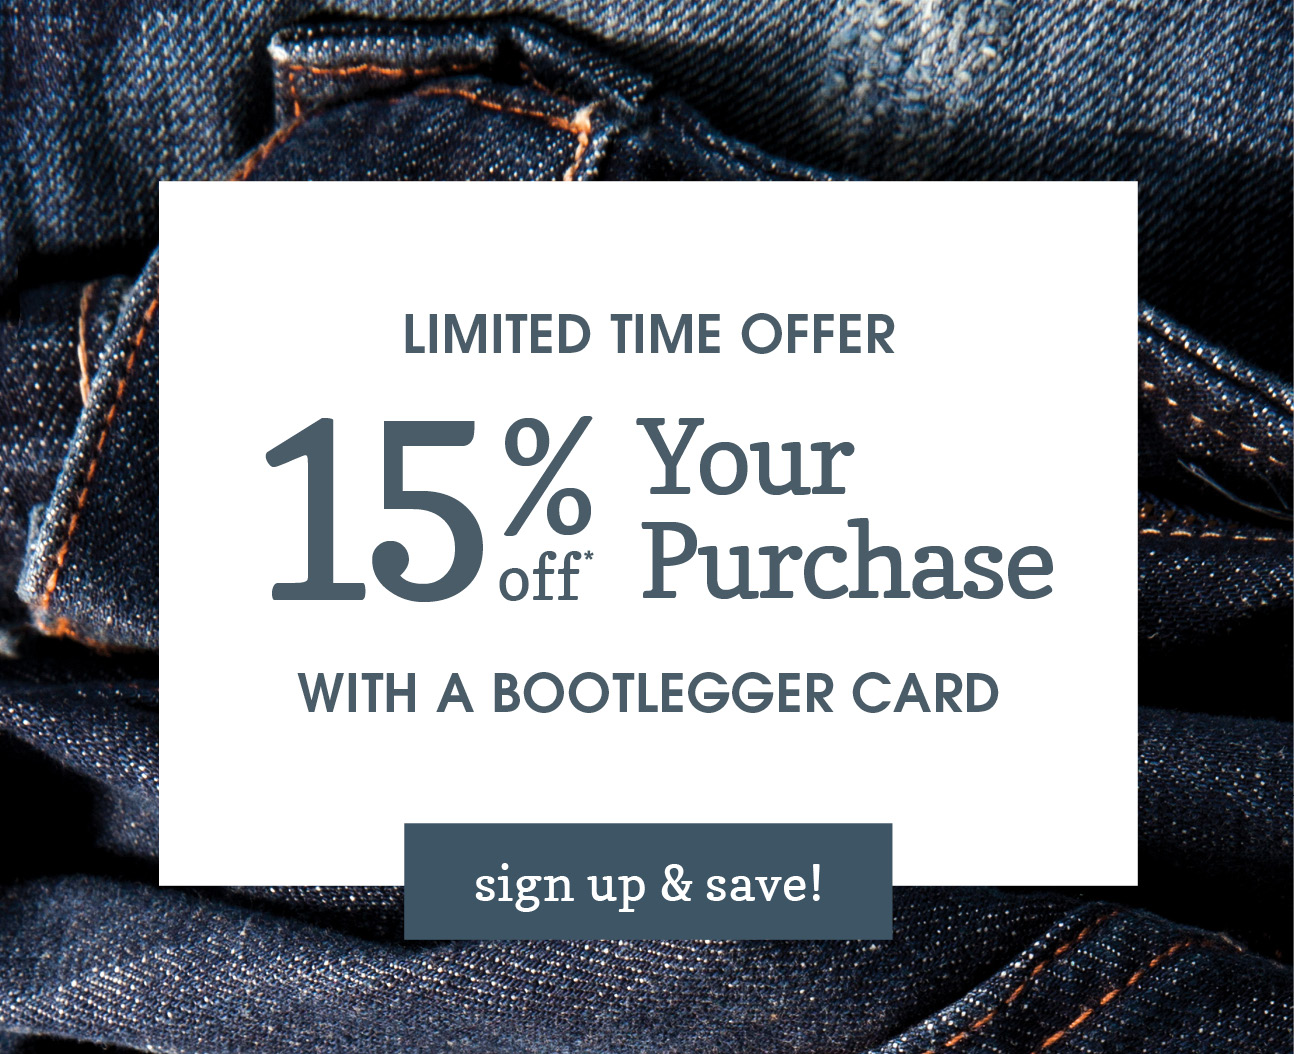 Take an extra 15% off your order with a Bootlegger Card